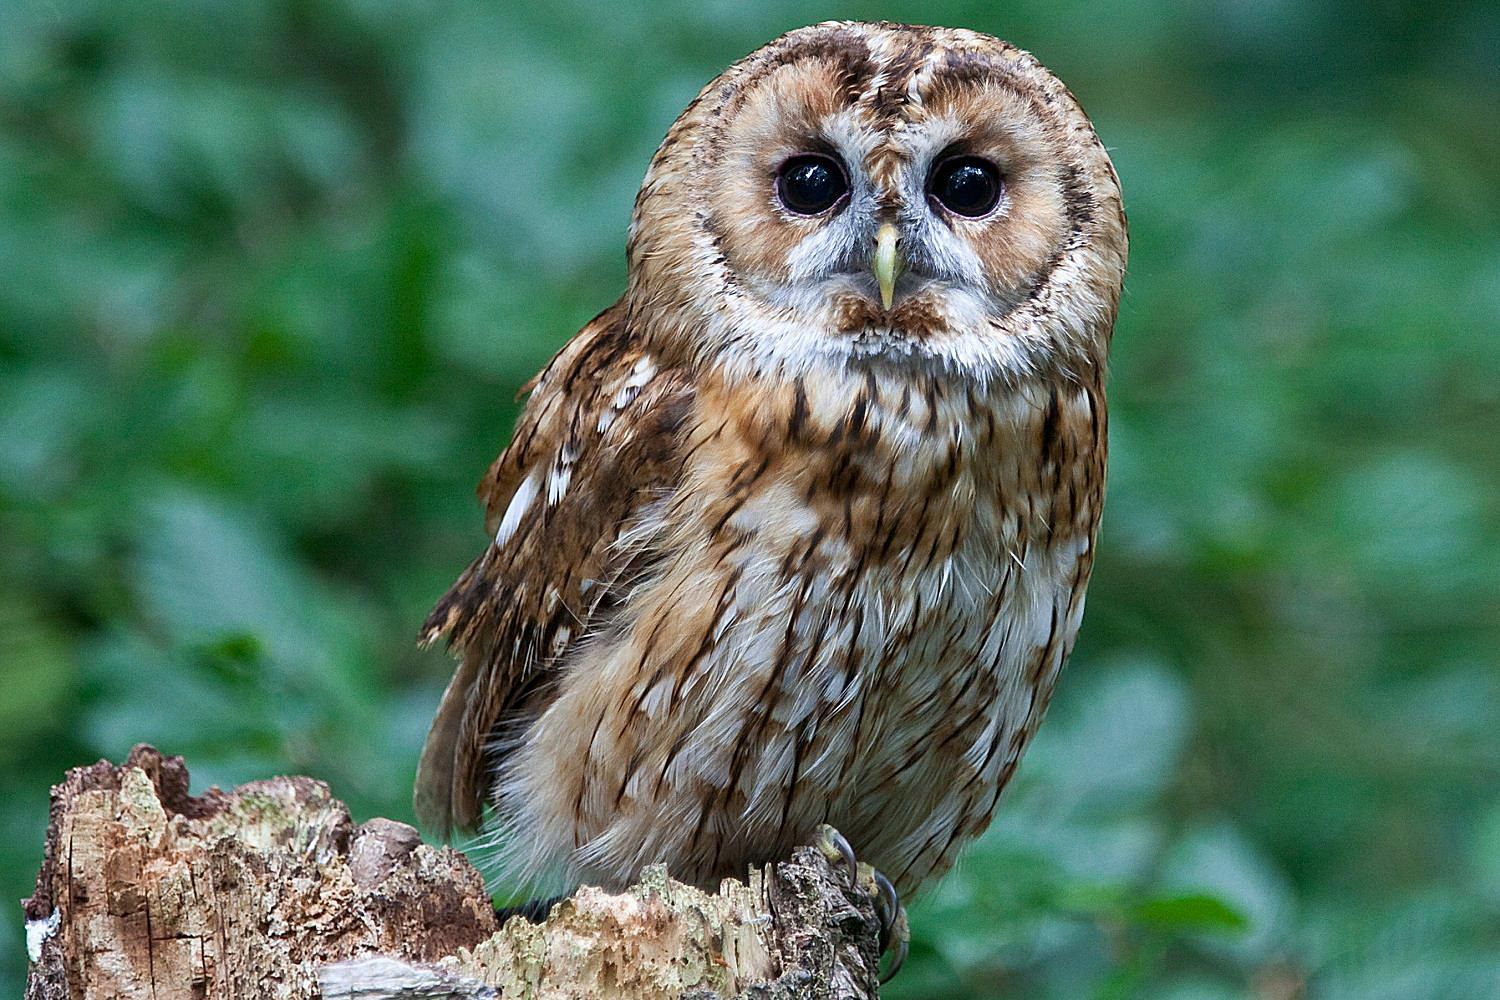 10 ways to help owls owl conservation tips - Picture Of Owl